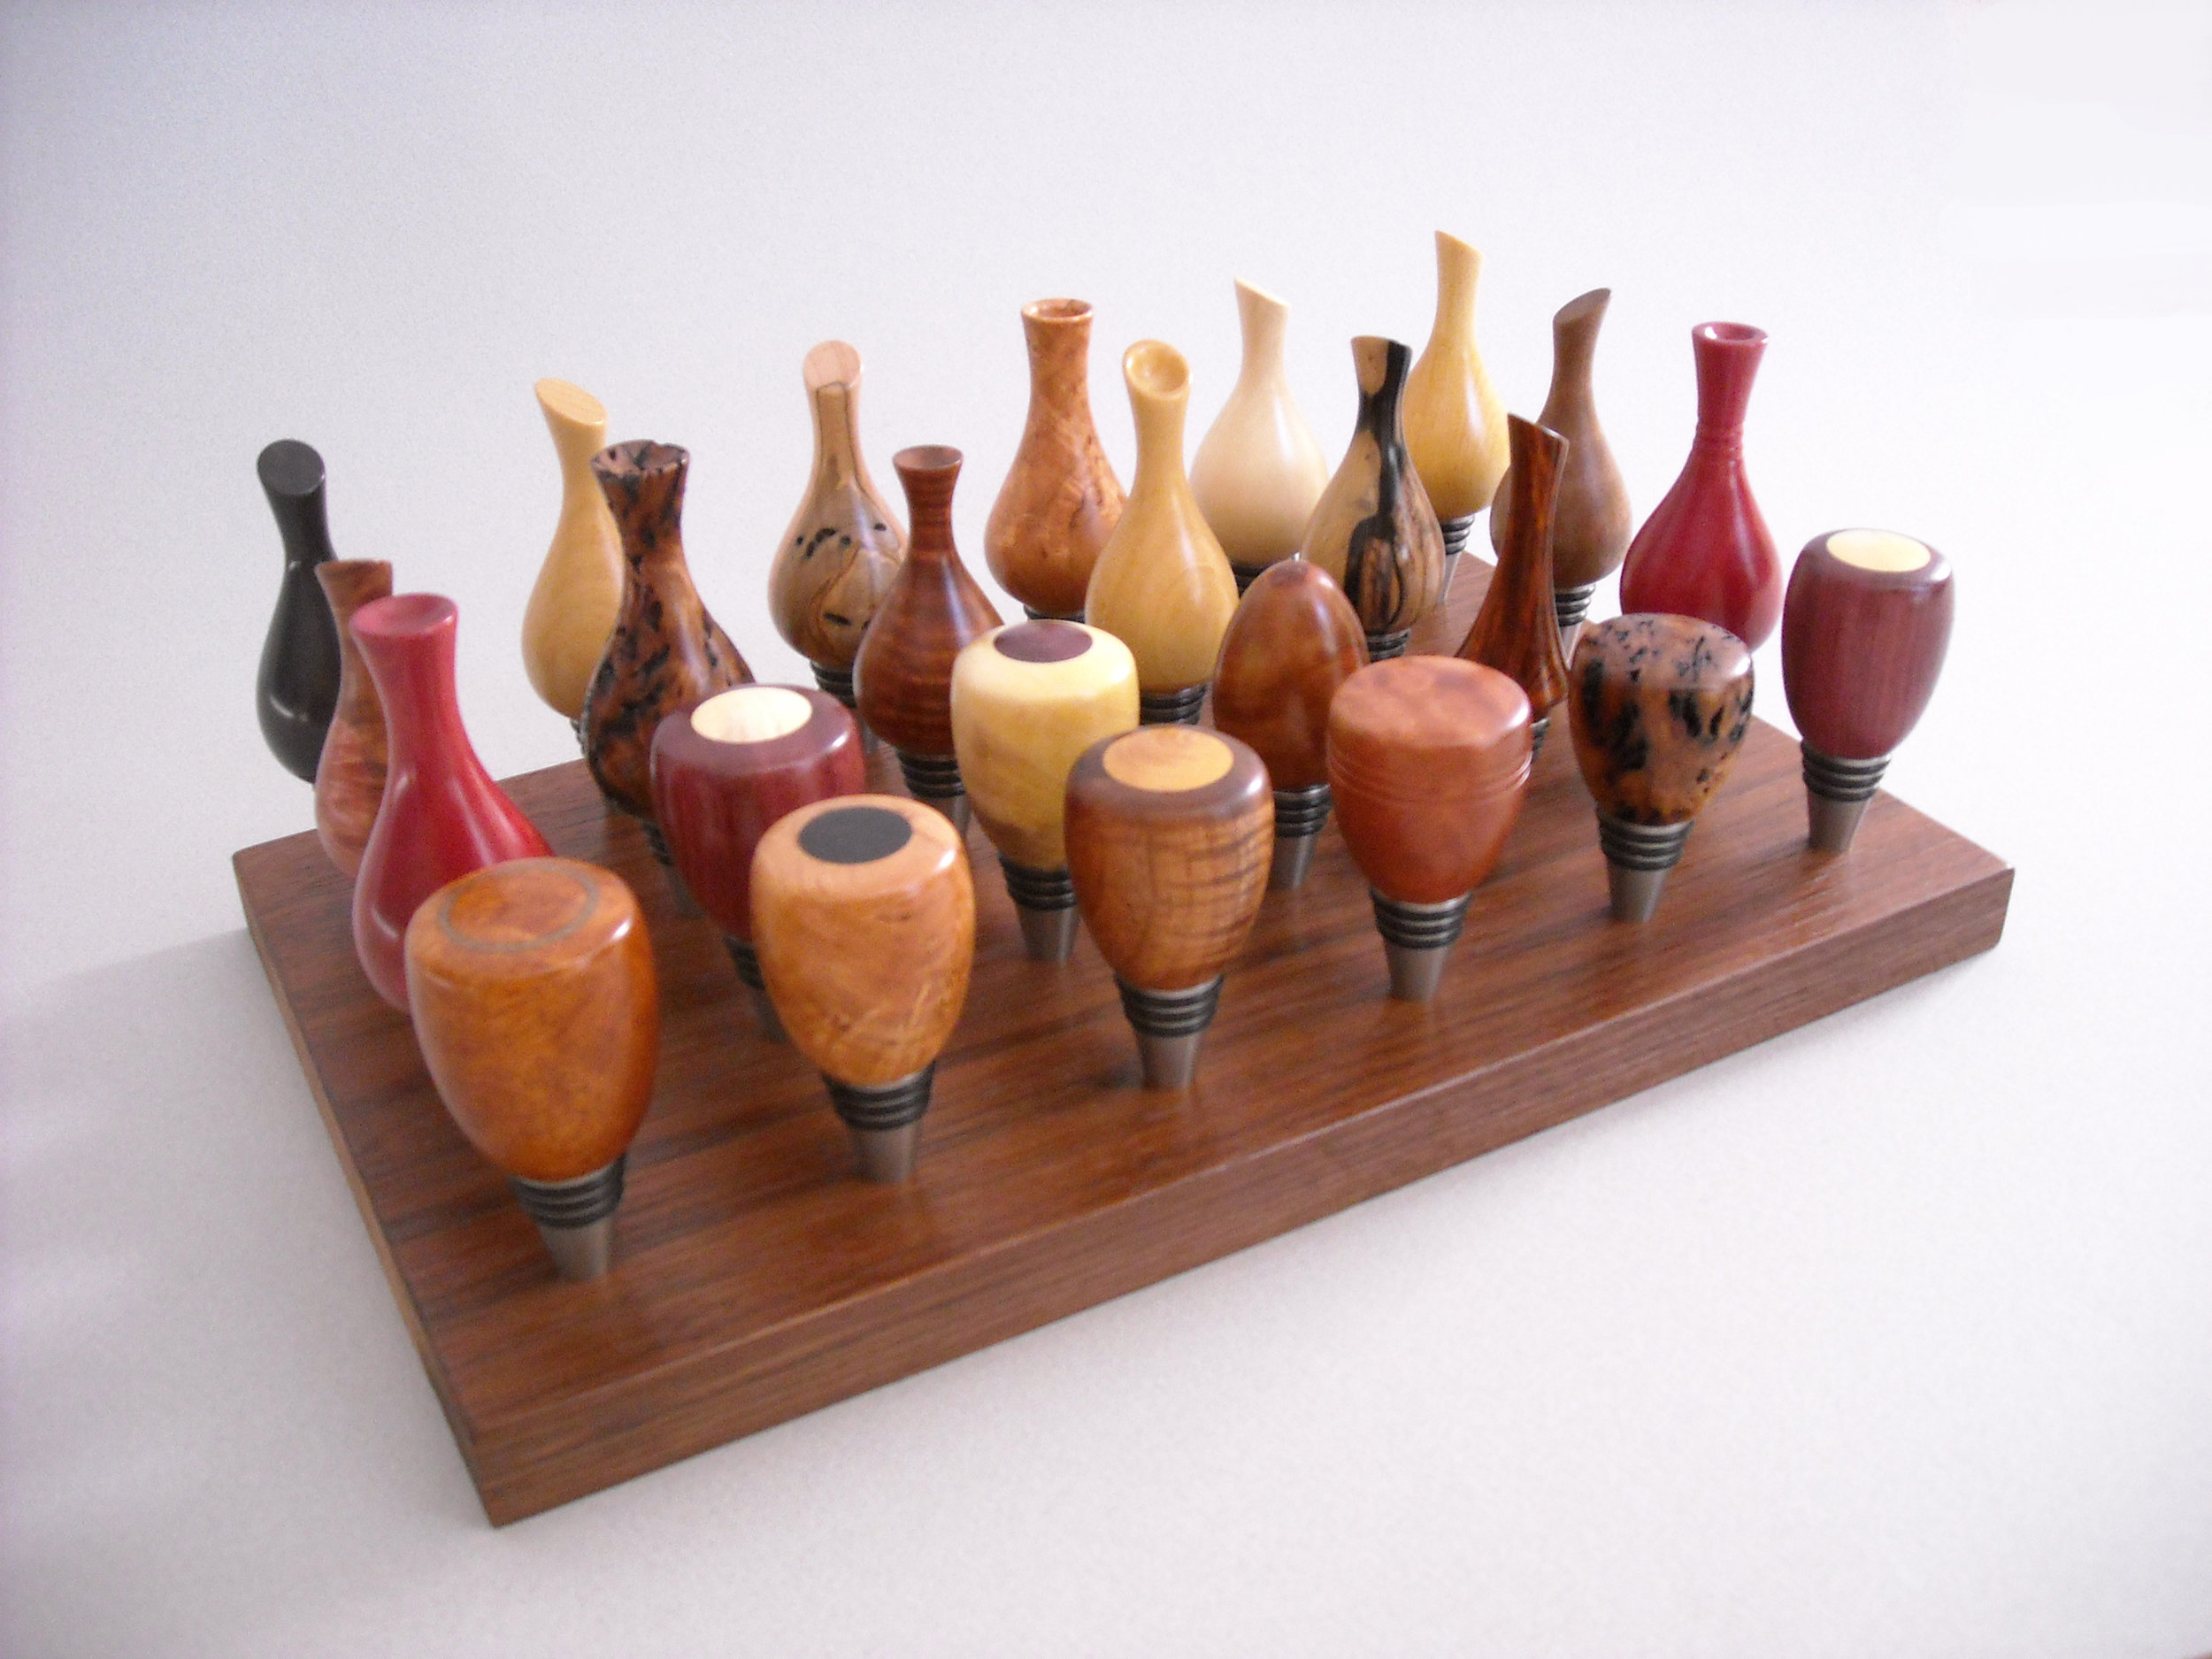 A flock of stainless steel wine bottle stoppers